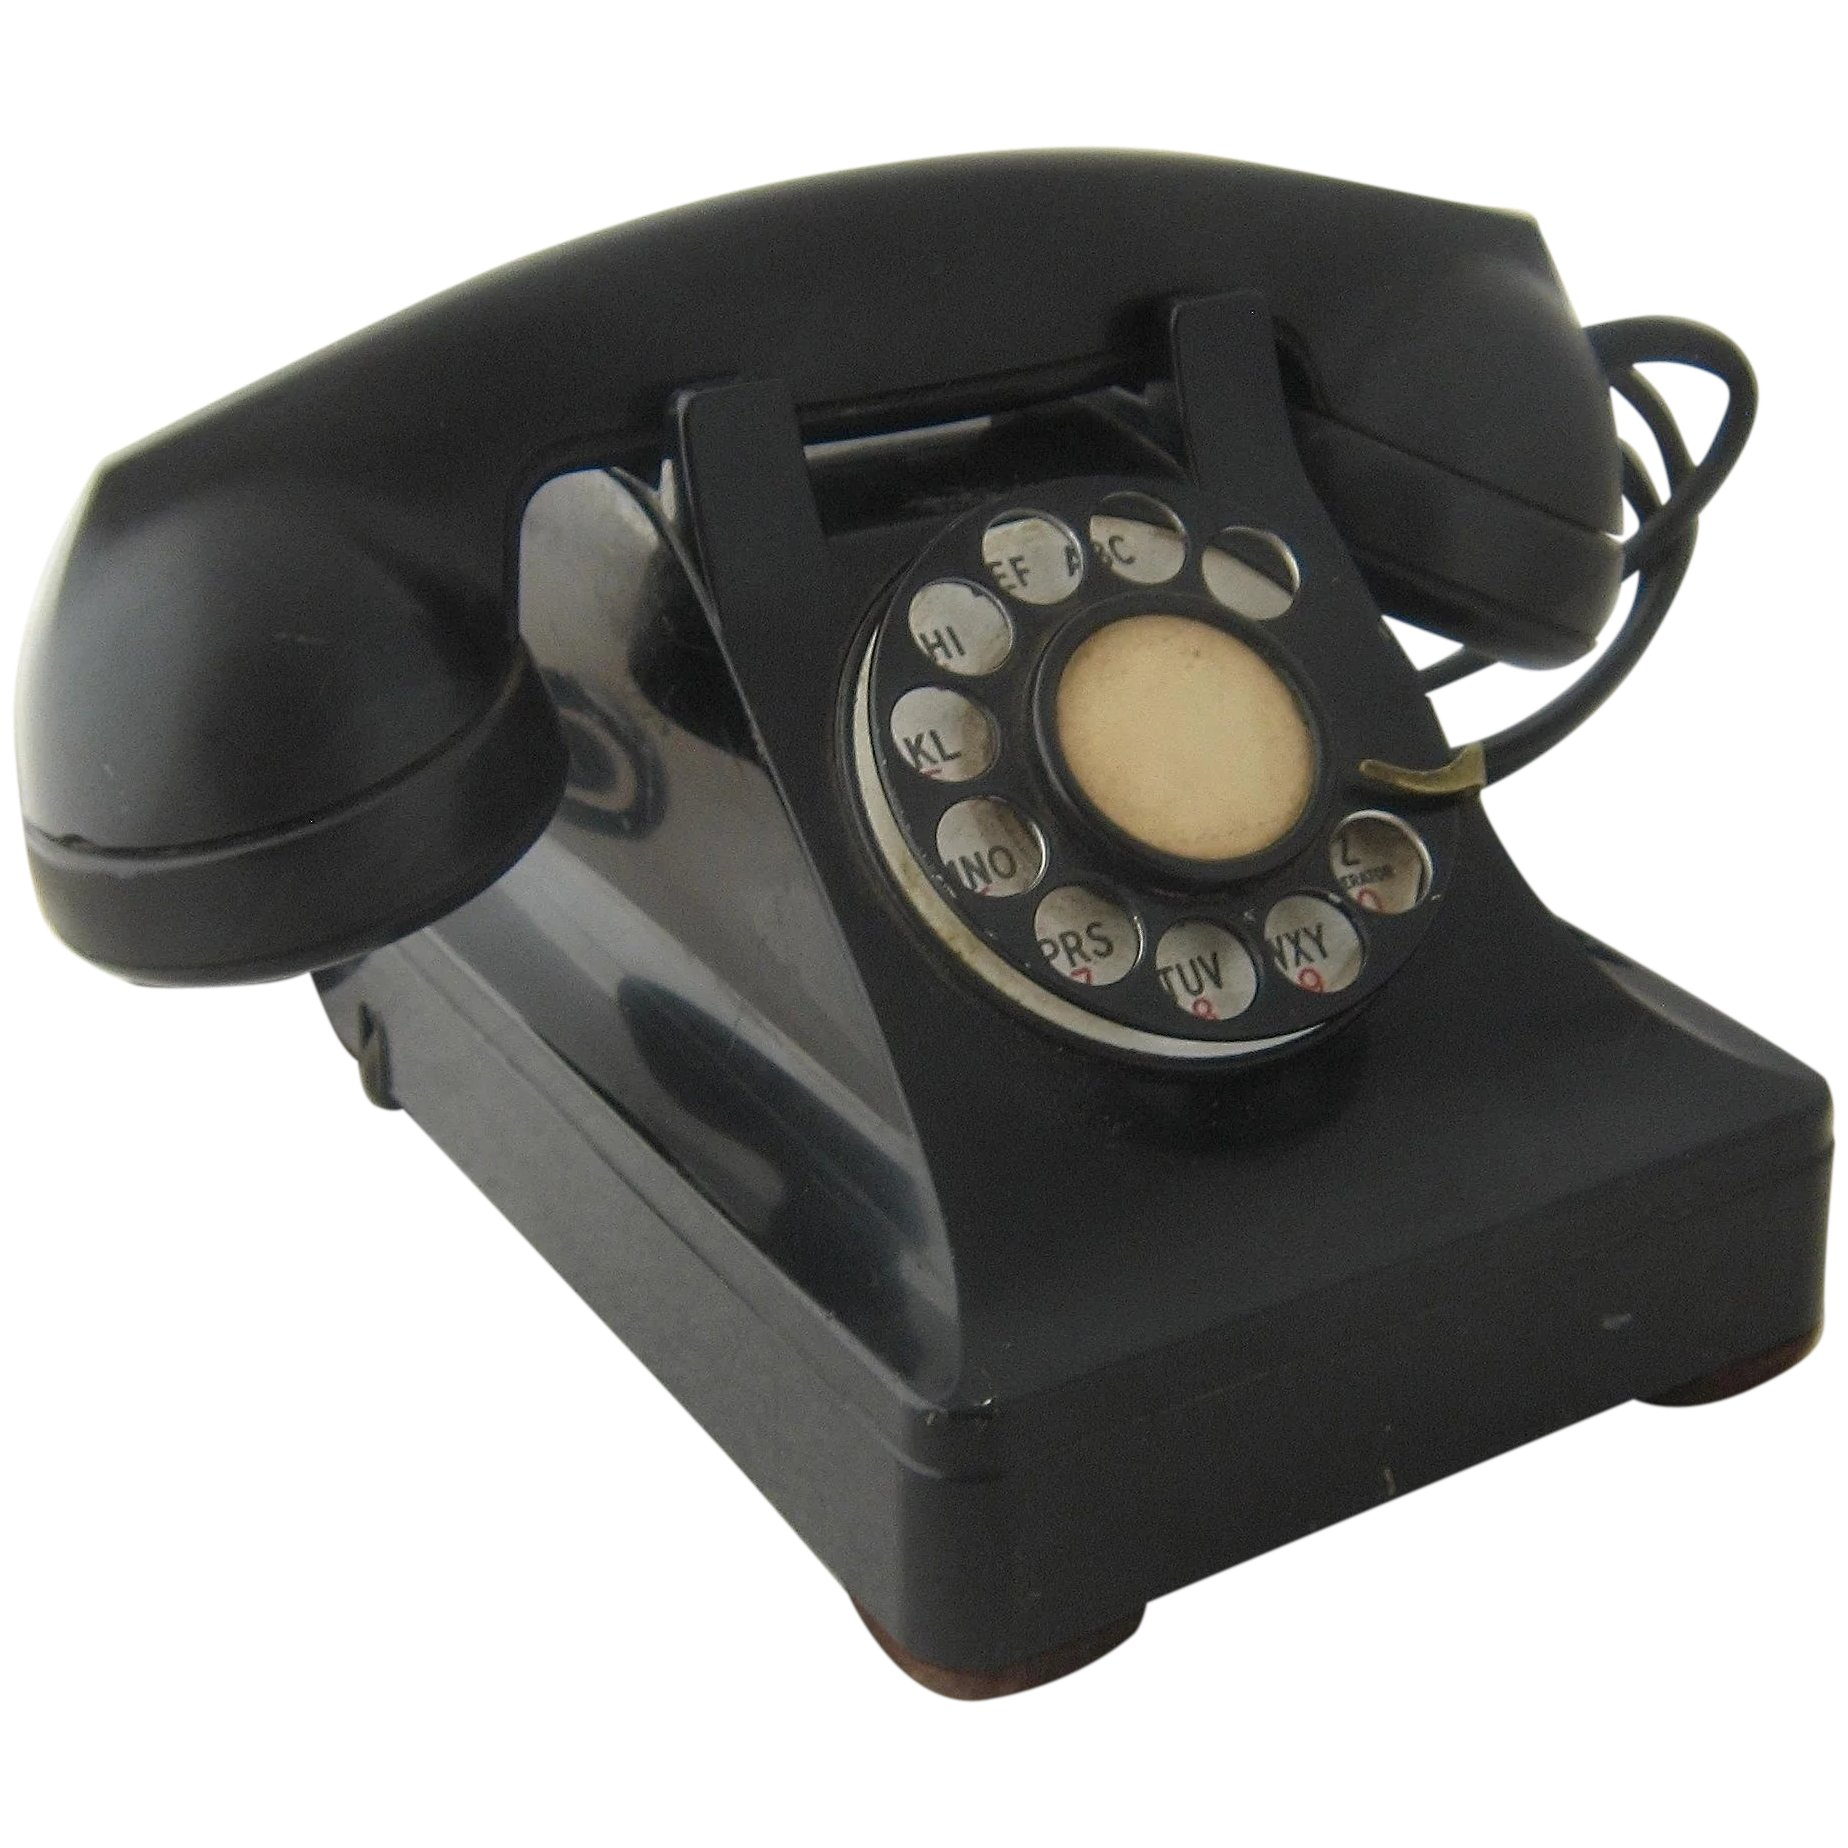 1940s Western Electric Black Desk Telephone Rotary Dial : Mendocino ...